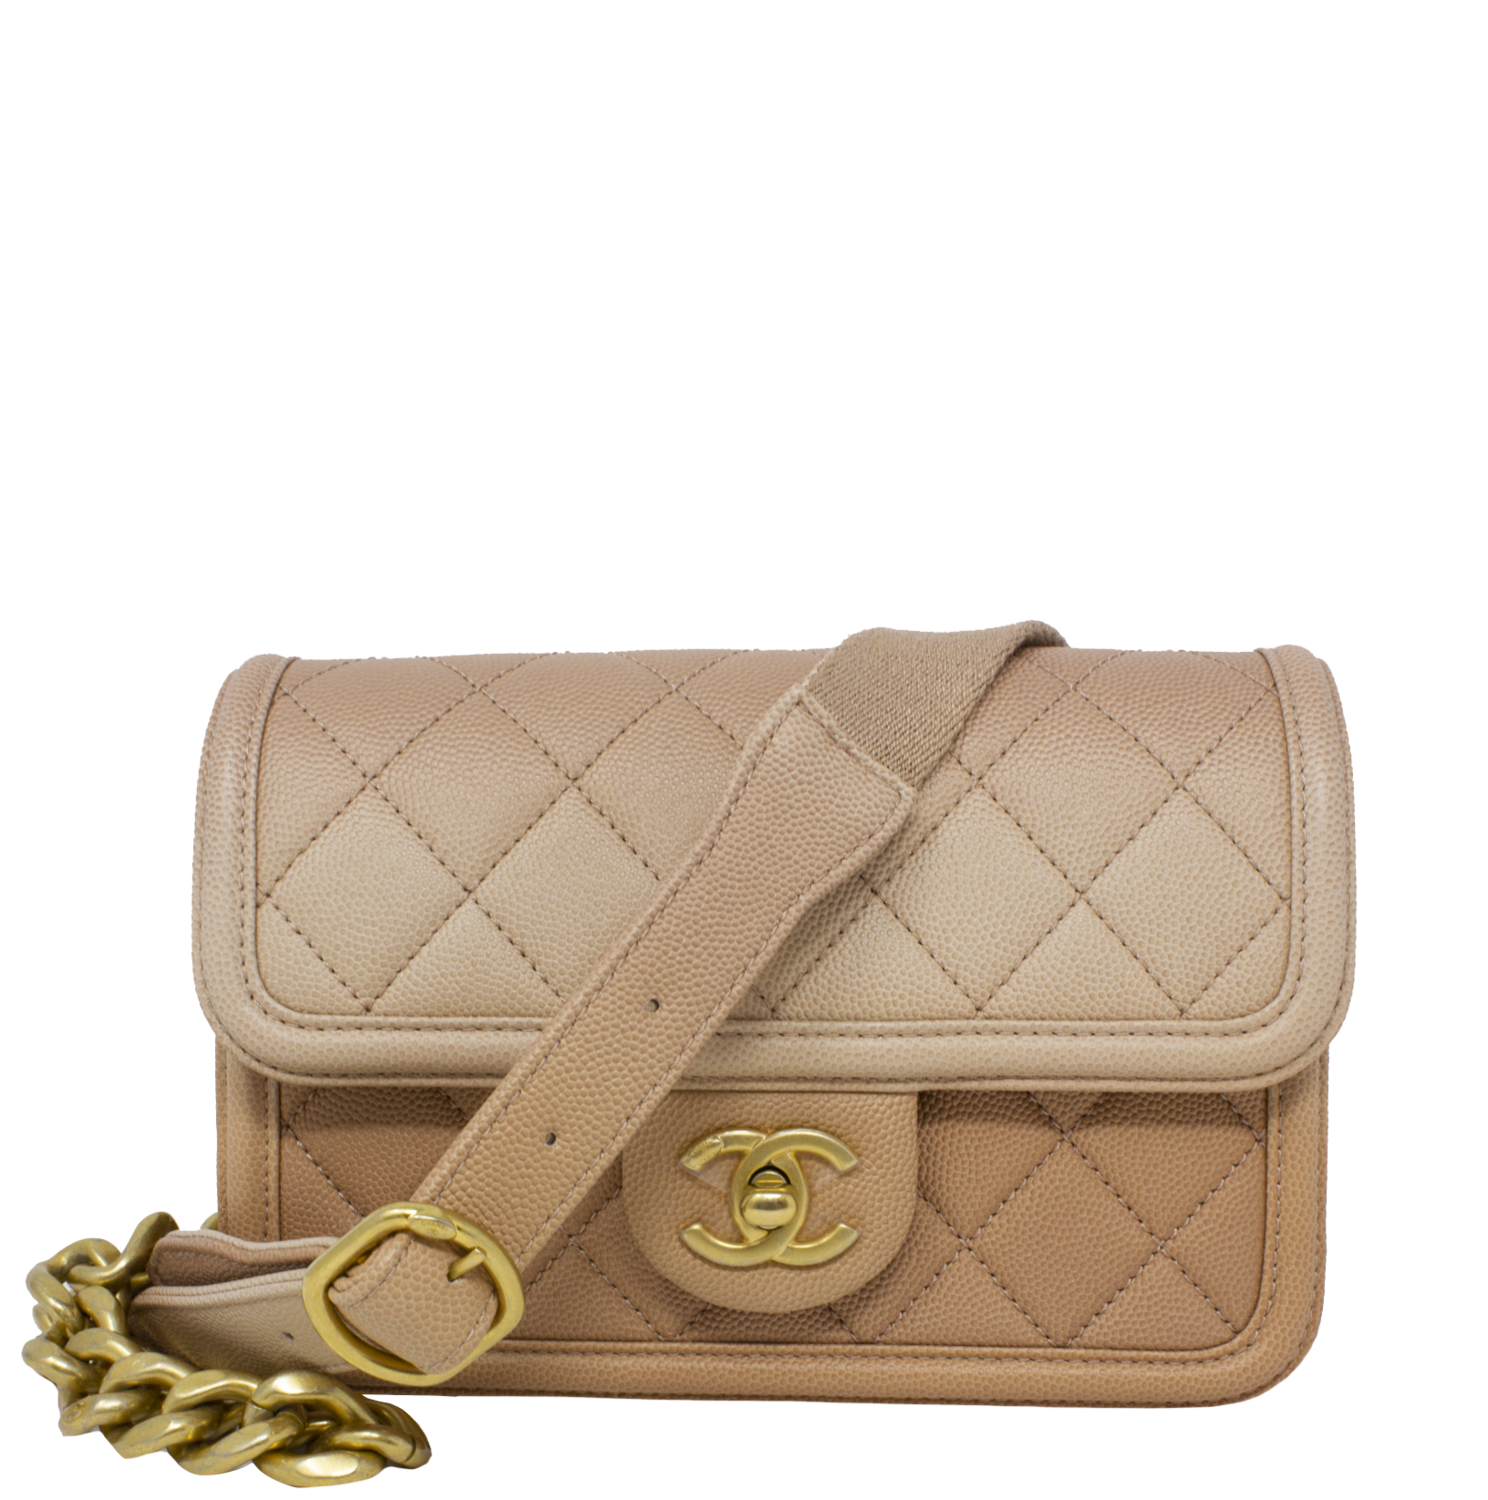 Chanel 2019 Beige Sunset On The Sea Bag w/ Tags